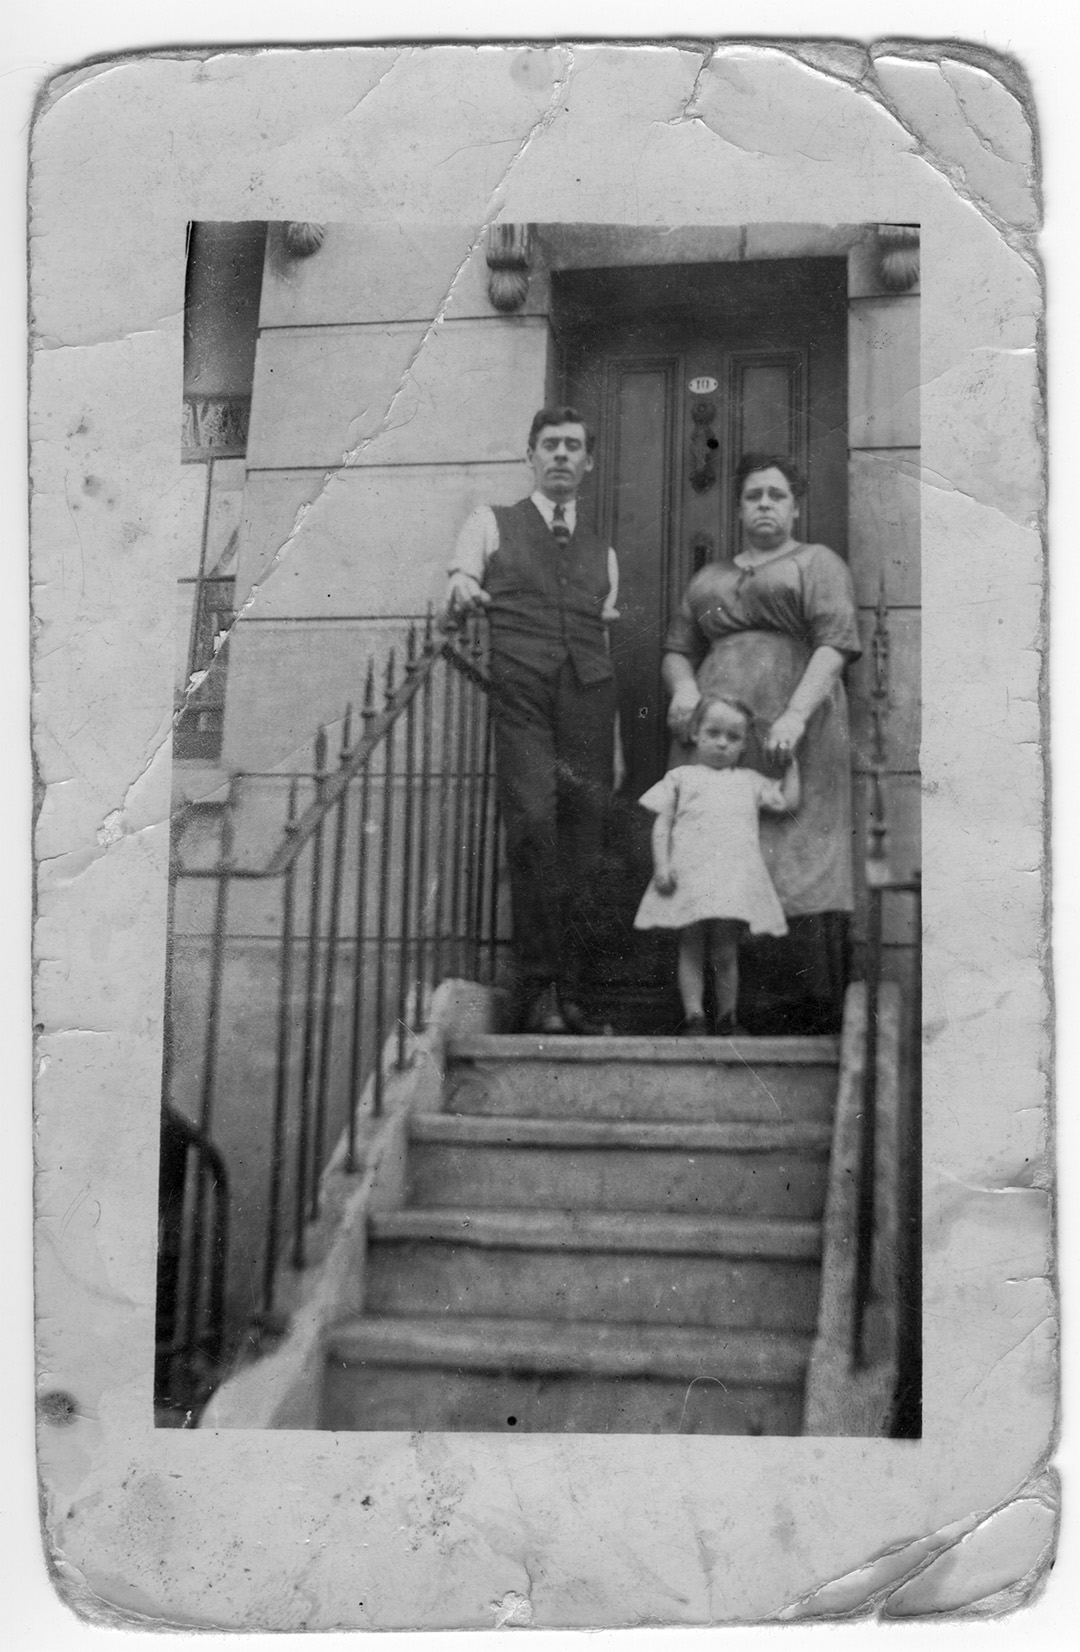 Old photograph family on house steps early 1900s